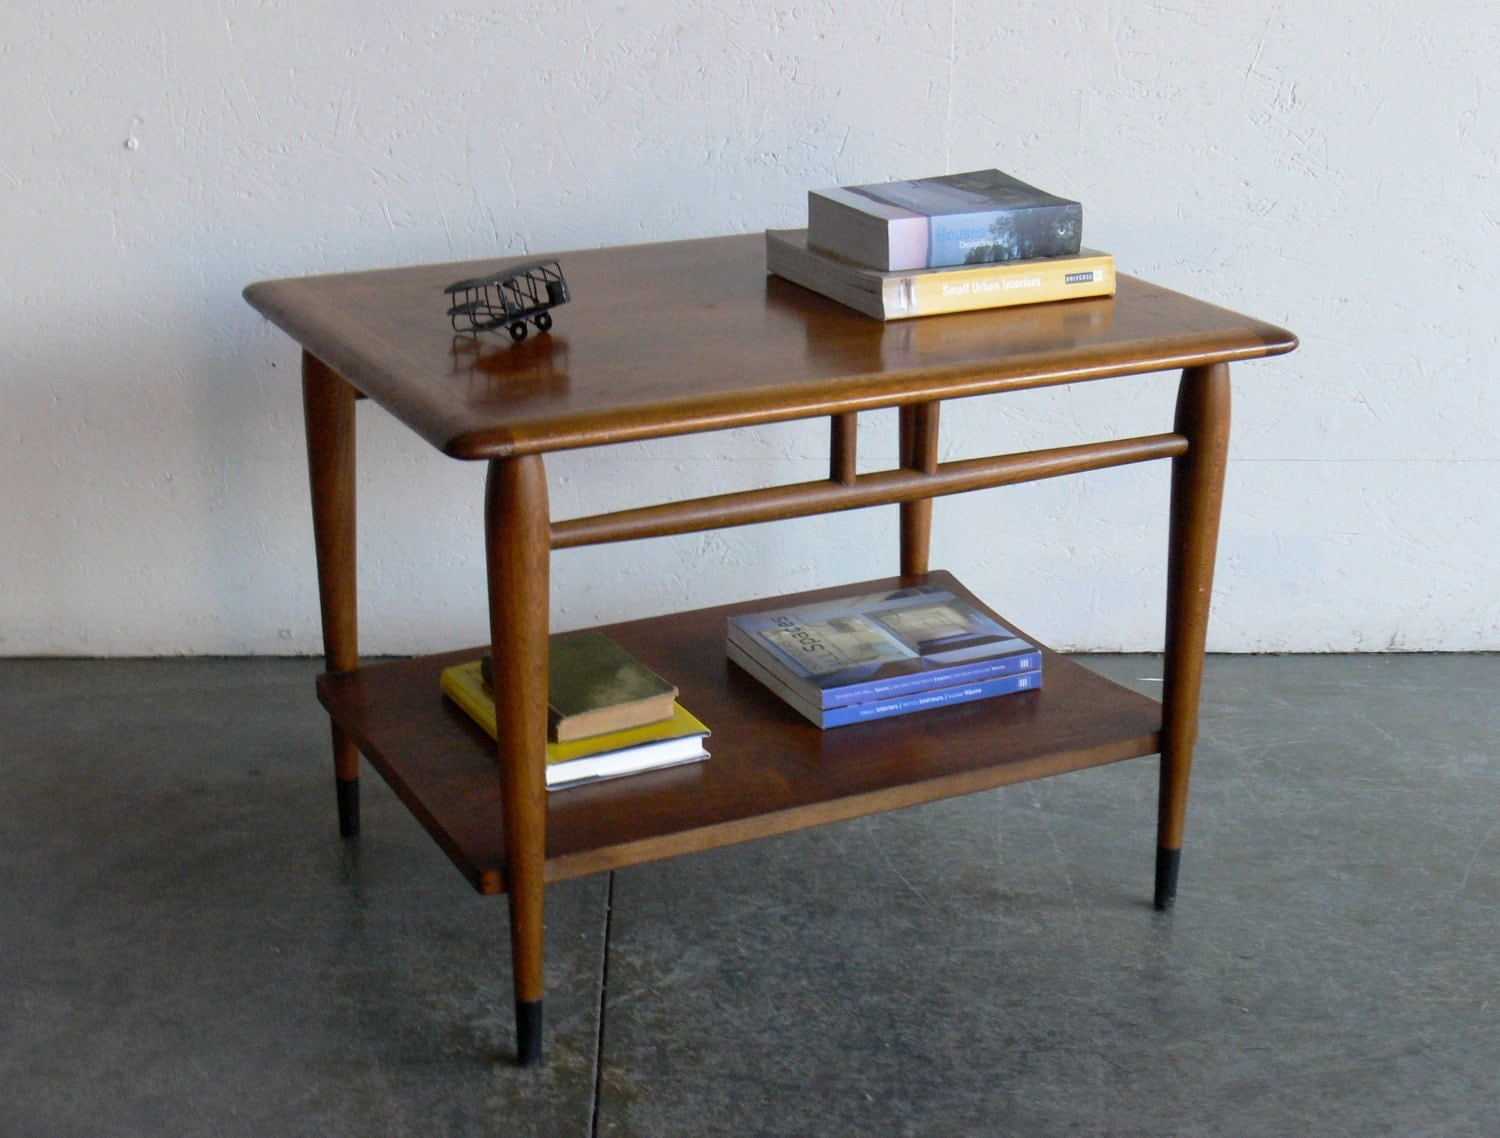 1000+ images about Tables on Pinterest   Mid-century ...